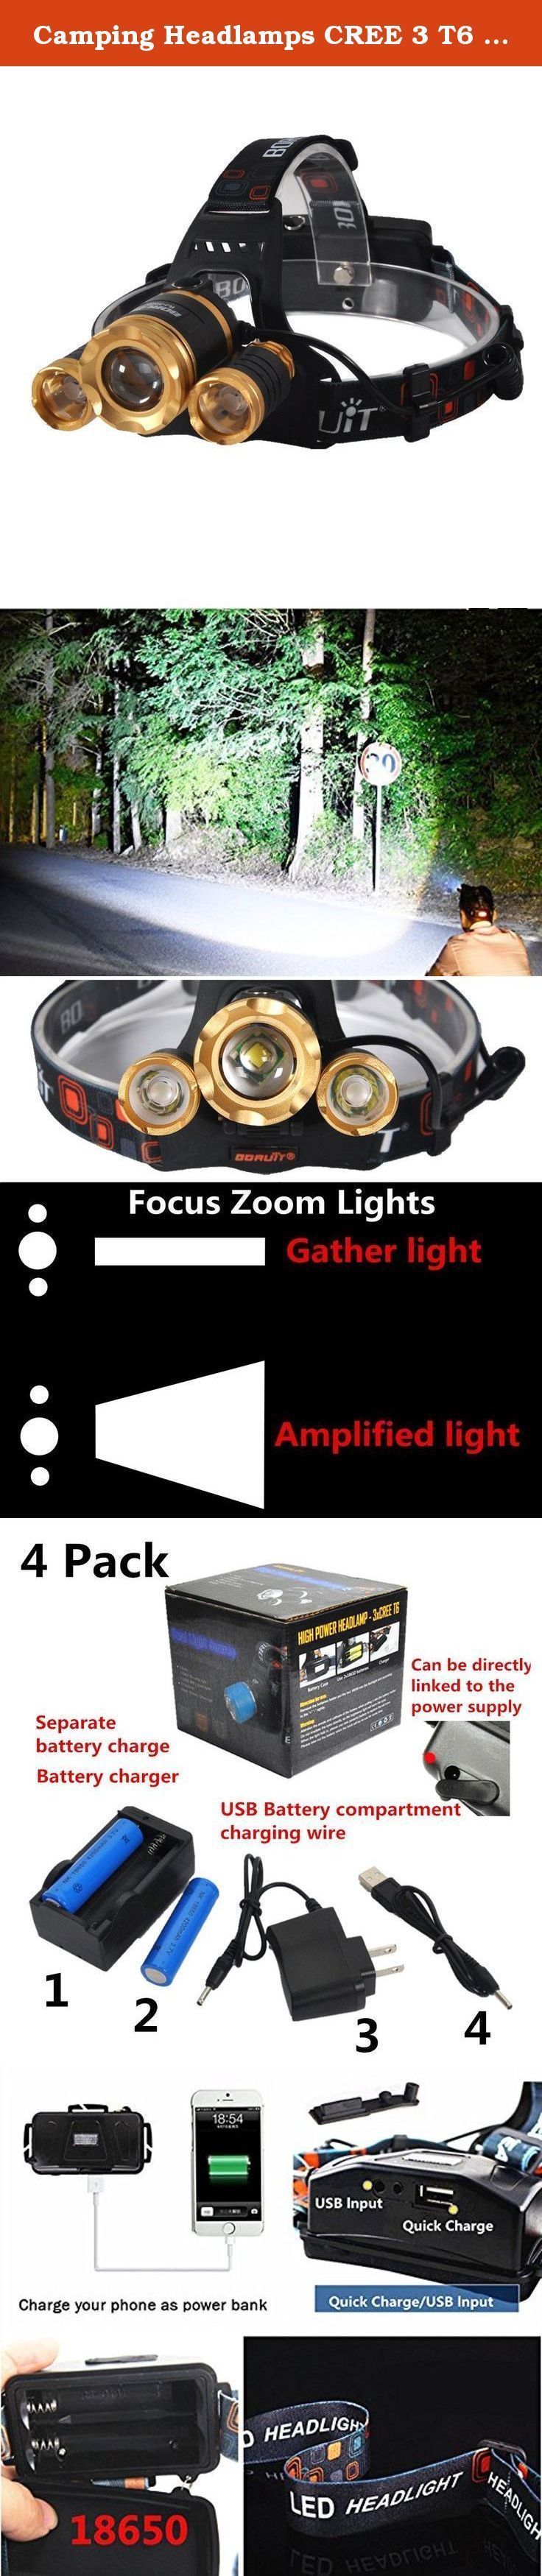 Camping Headlamps CREE 3 T6 5000 Lumen Zoomable Super Bright,Headlight Bicycle LED Flashlight,4 Modes,USB Rechargeable Batteries,Adjustable (Focus Zoom Lights, Golden). Package comes with 1x headlamp, 1x wall charger, 1x USB cable,1xbattery charger, 2x 18650 batteries. Features: Product weight: 300g, 10.6 oz Item Type: Headlamps Purpose: Camping Light Source: CREE T6 *3 Model of LED Beads: T6 Battery Type: Lithium Ion Wattage: 20 w Waterproof: Yes Light Color: White Switch Mode:...